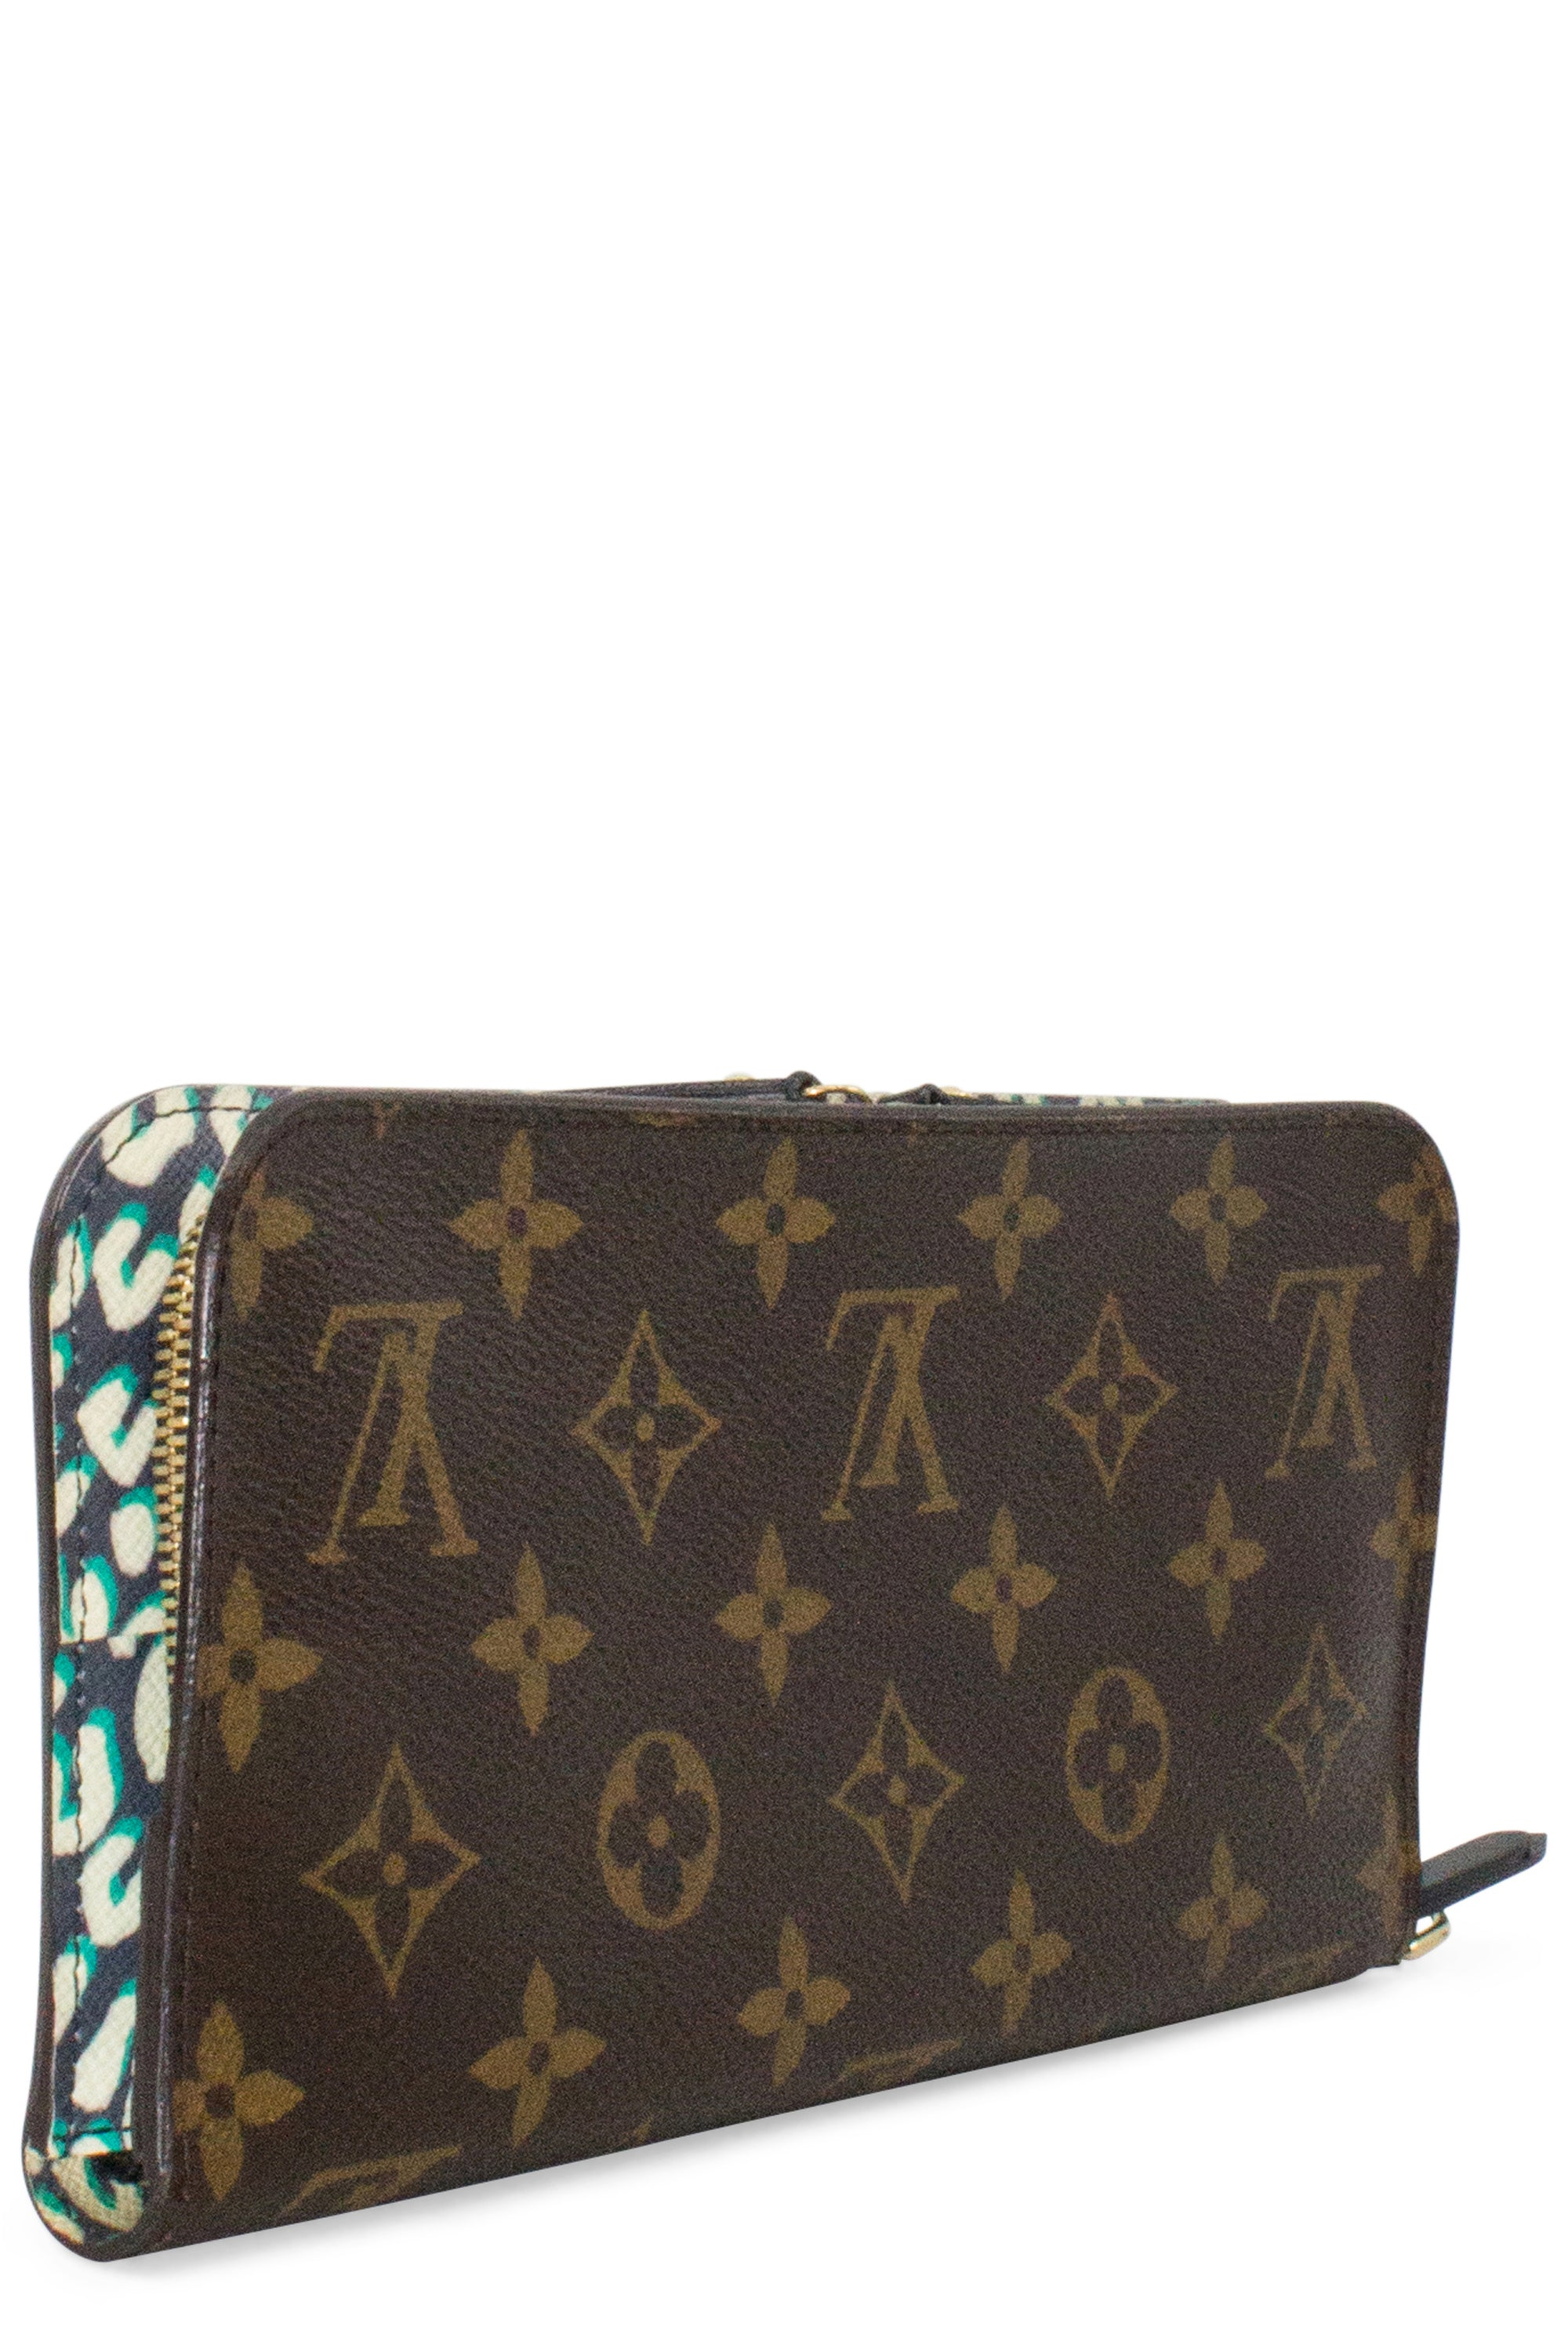 LOUIS VUITTON Wallet Insolite Leopard Interior Stephen Sprouse